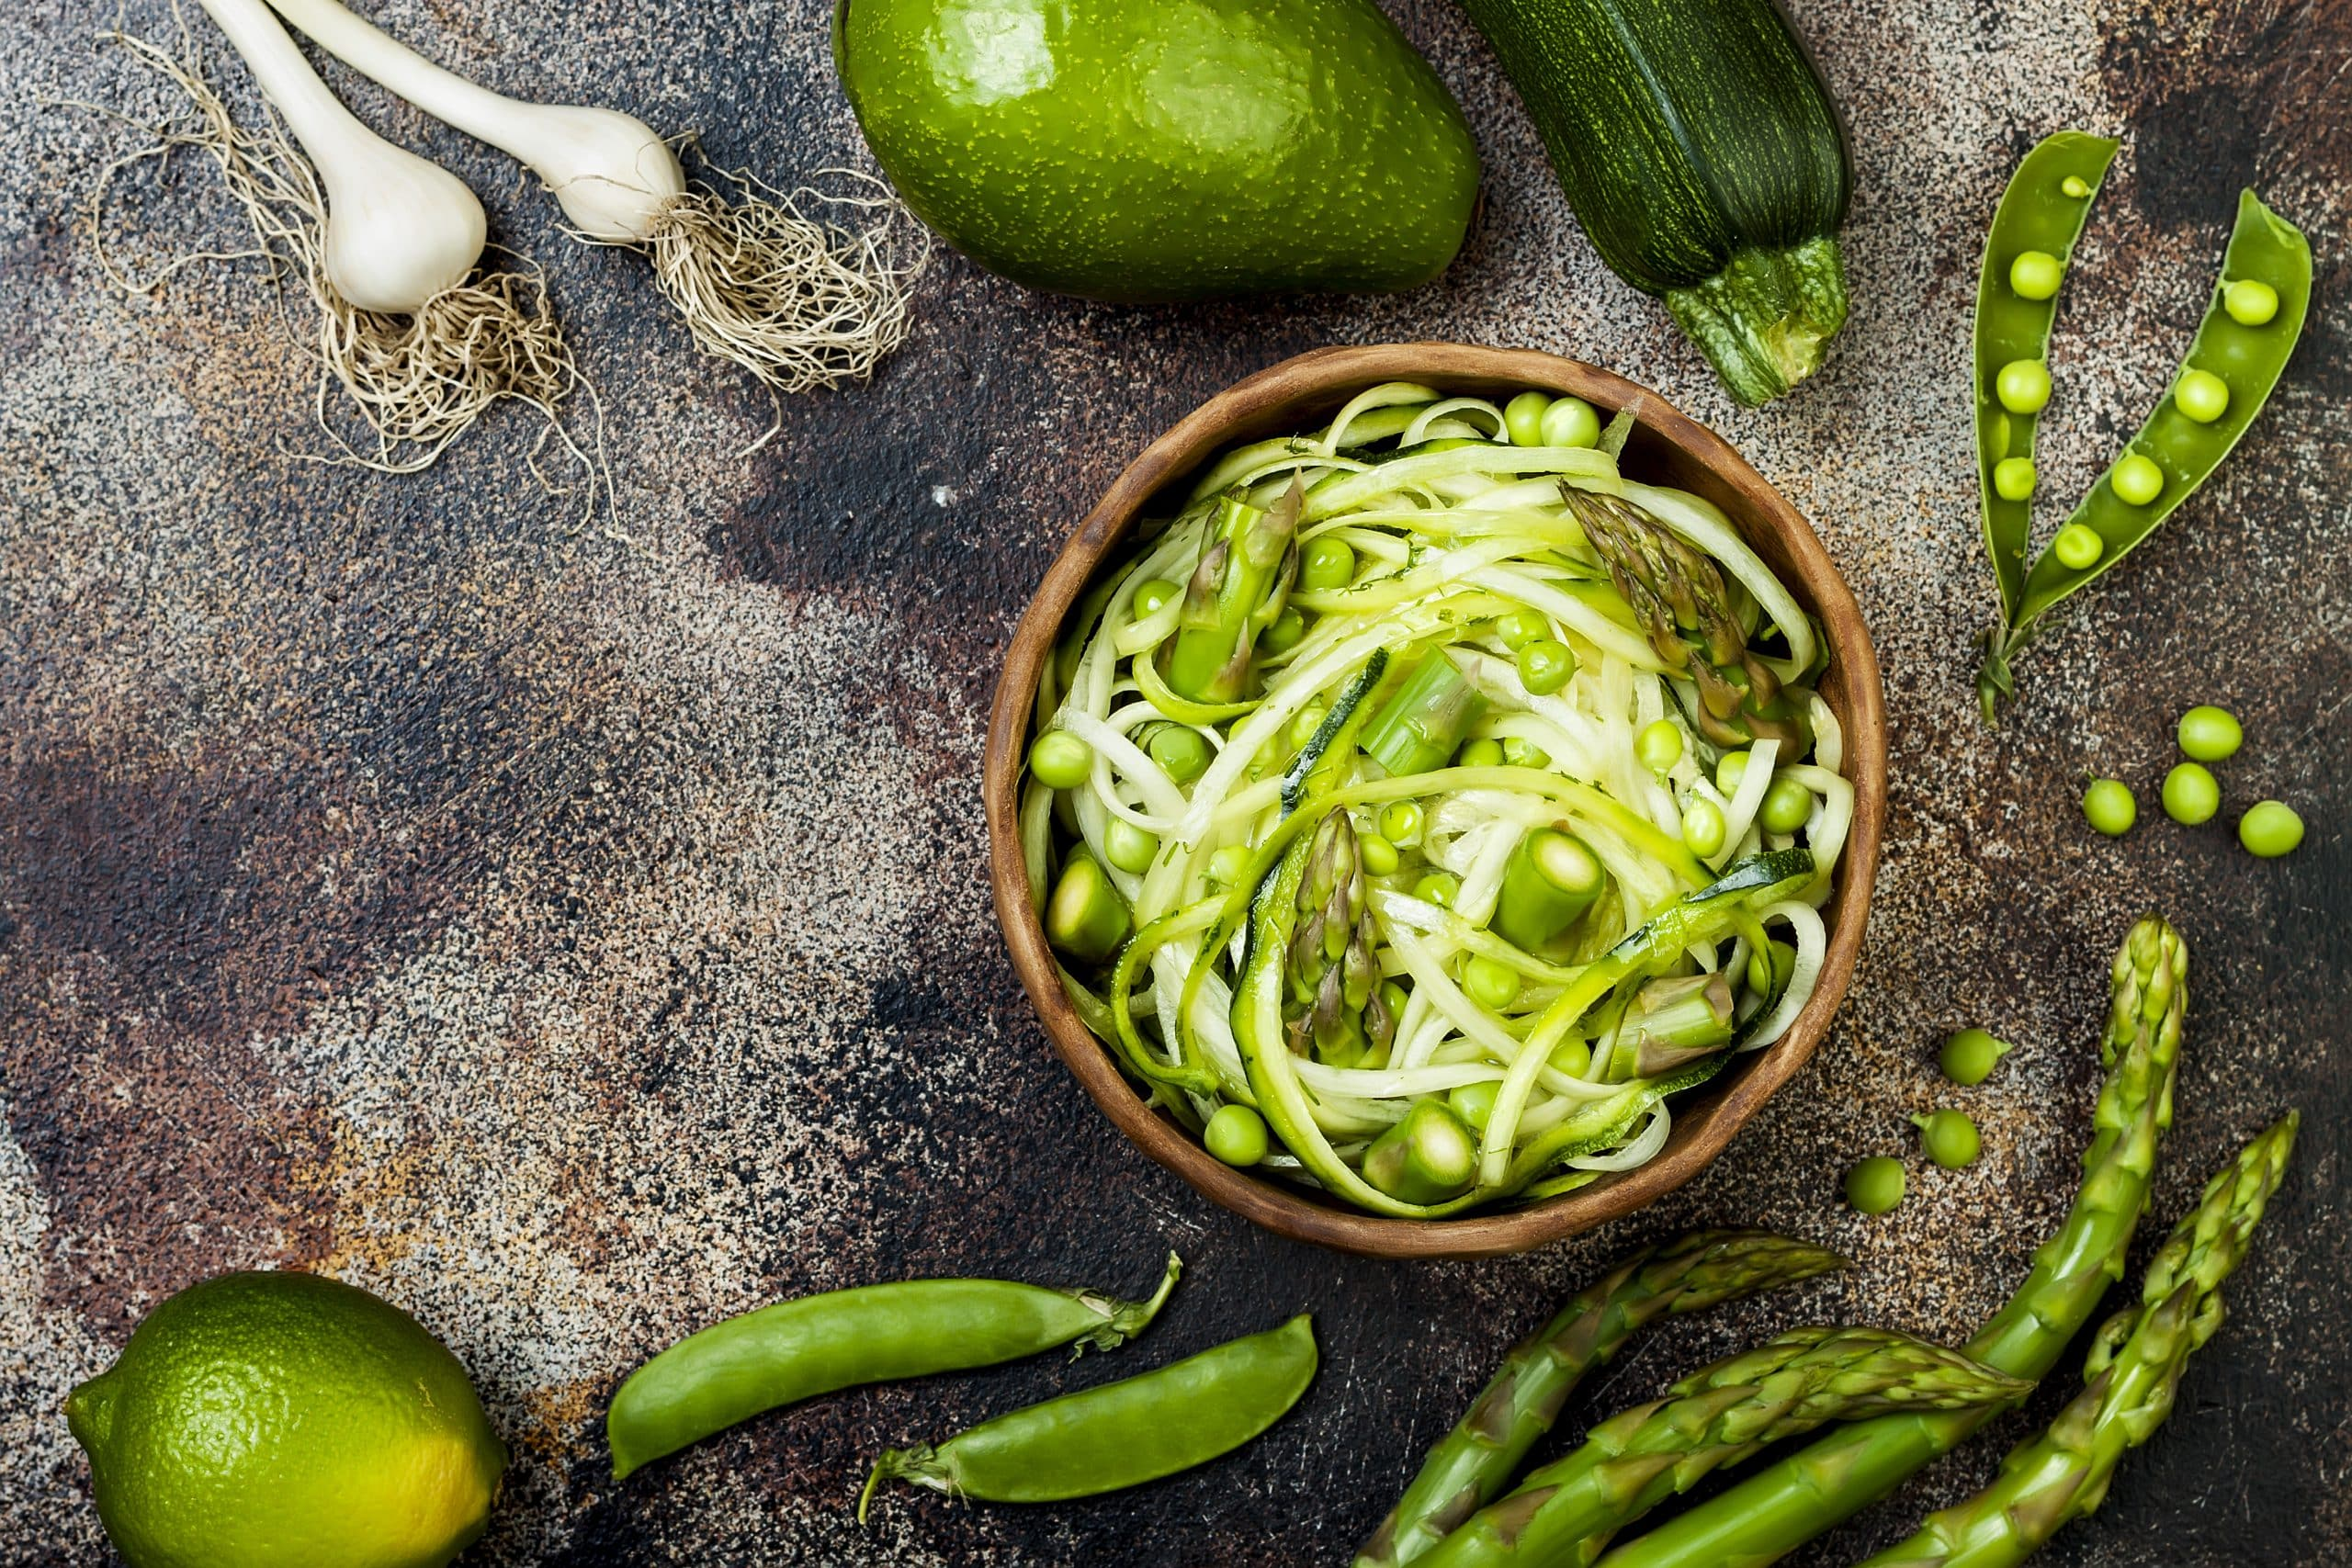 Zucchini spaghetti or noodles (zoodles) bowl with green veggies. vegmeup, vegan, plant based, food box